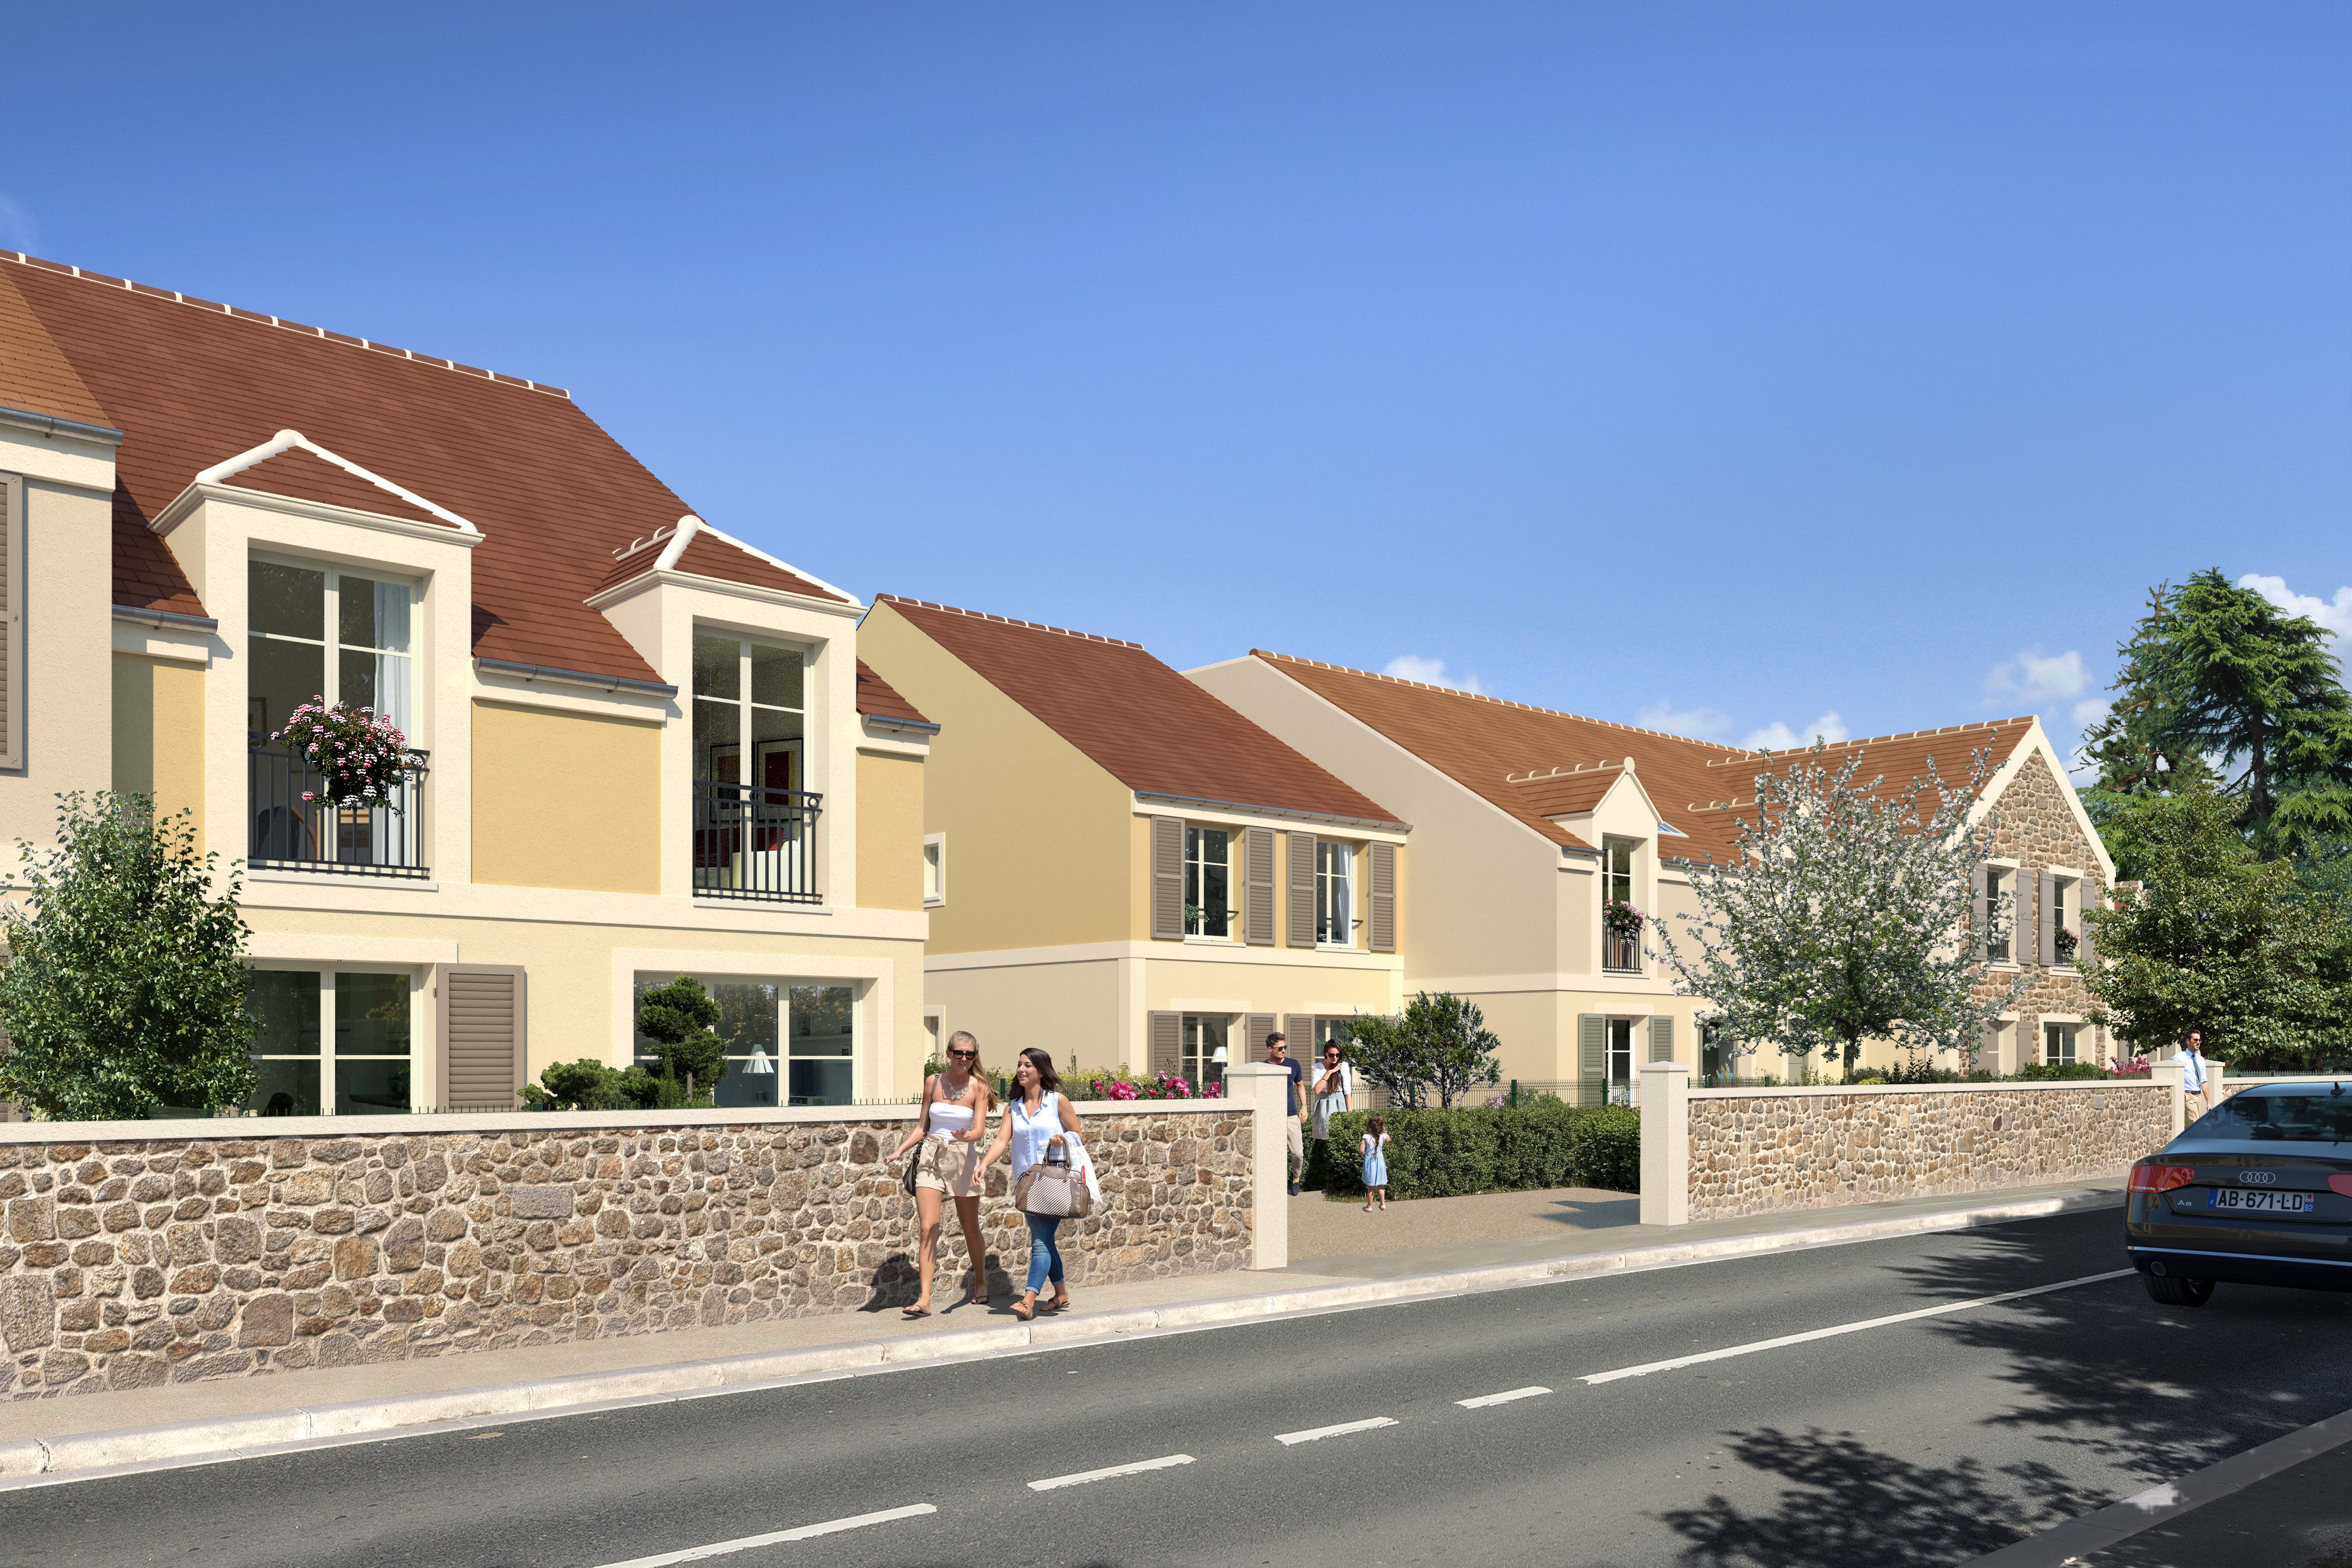 COTTAGES Magny les hameaux | Photo 1/2